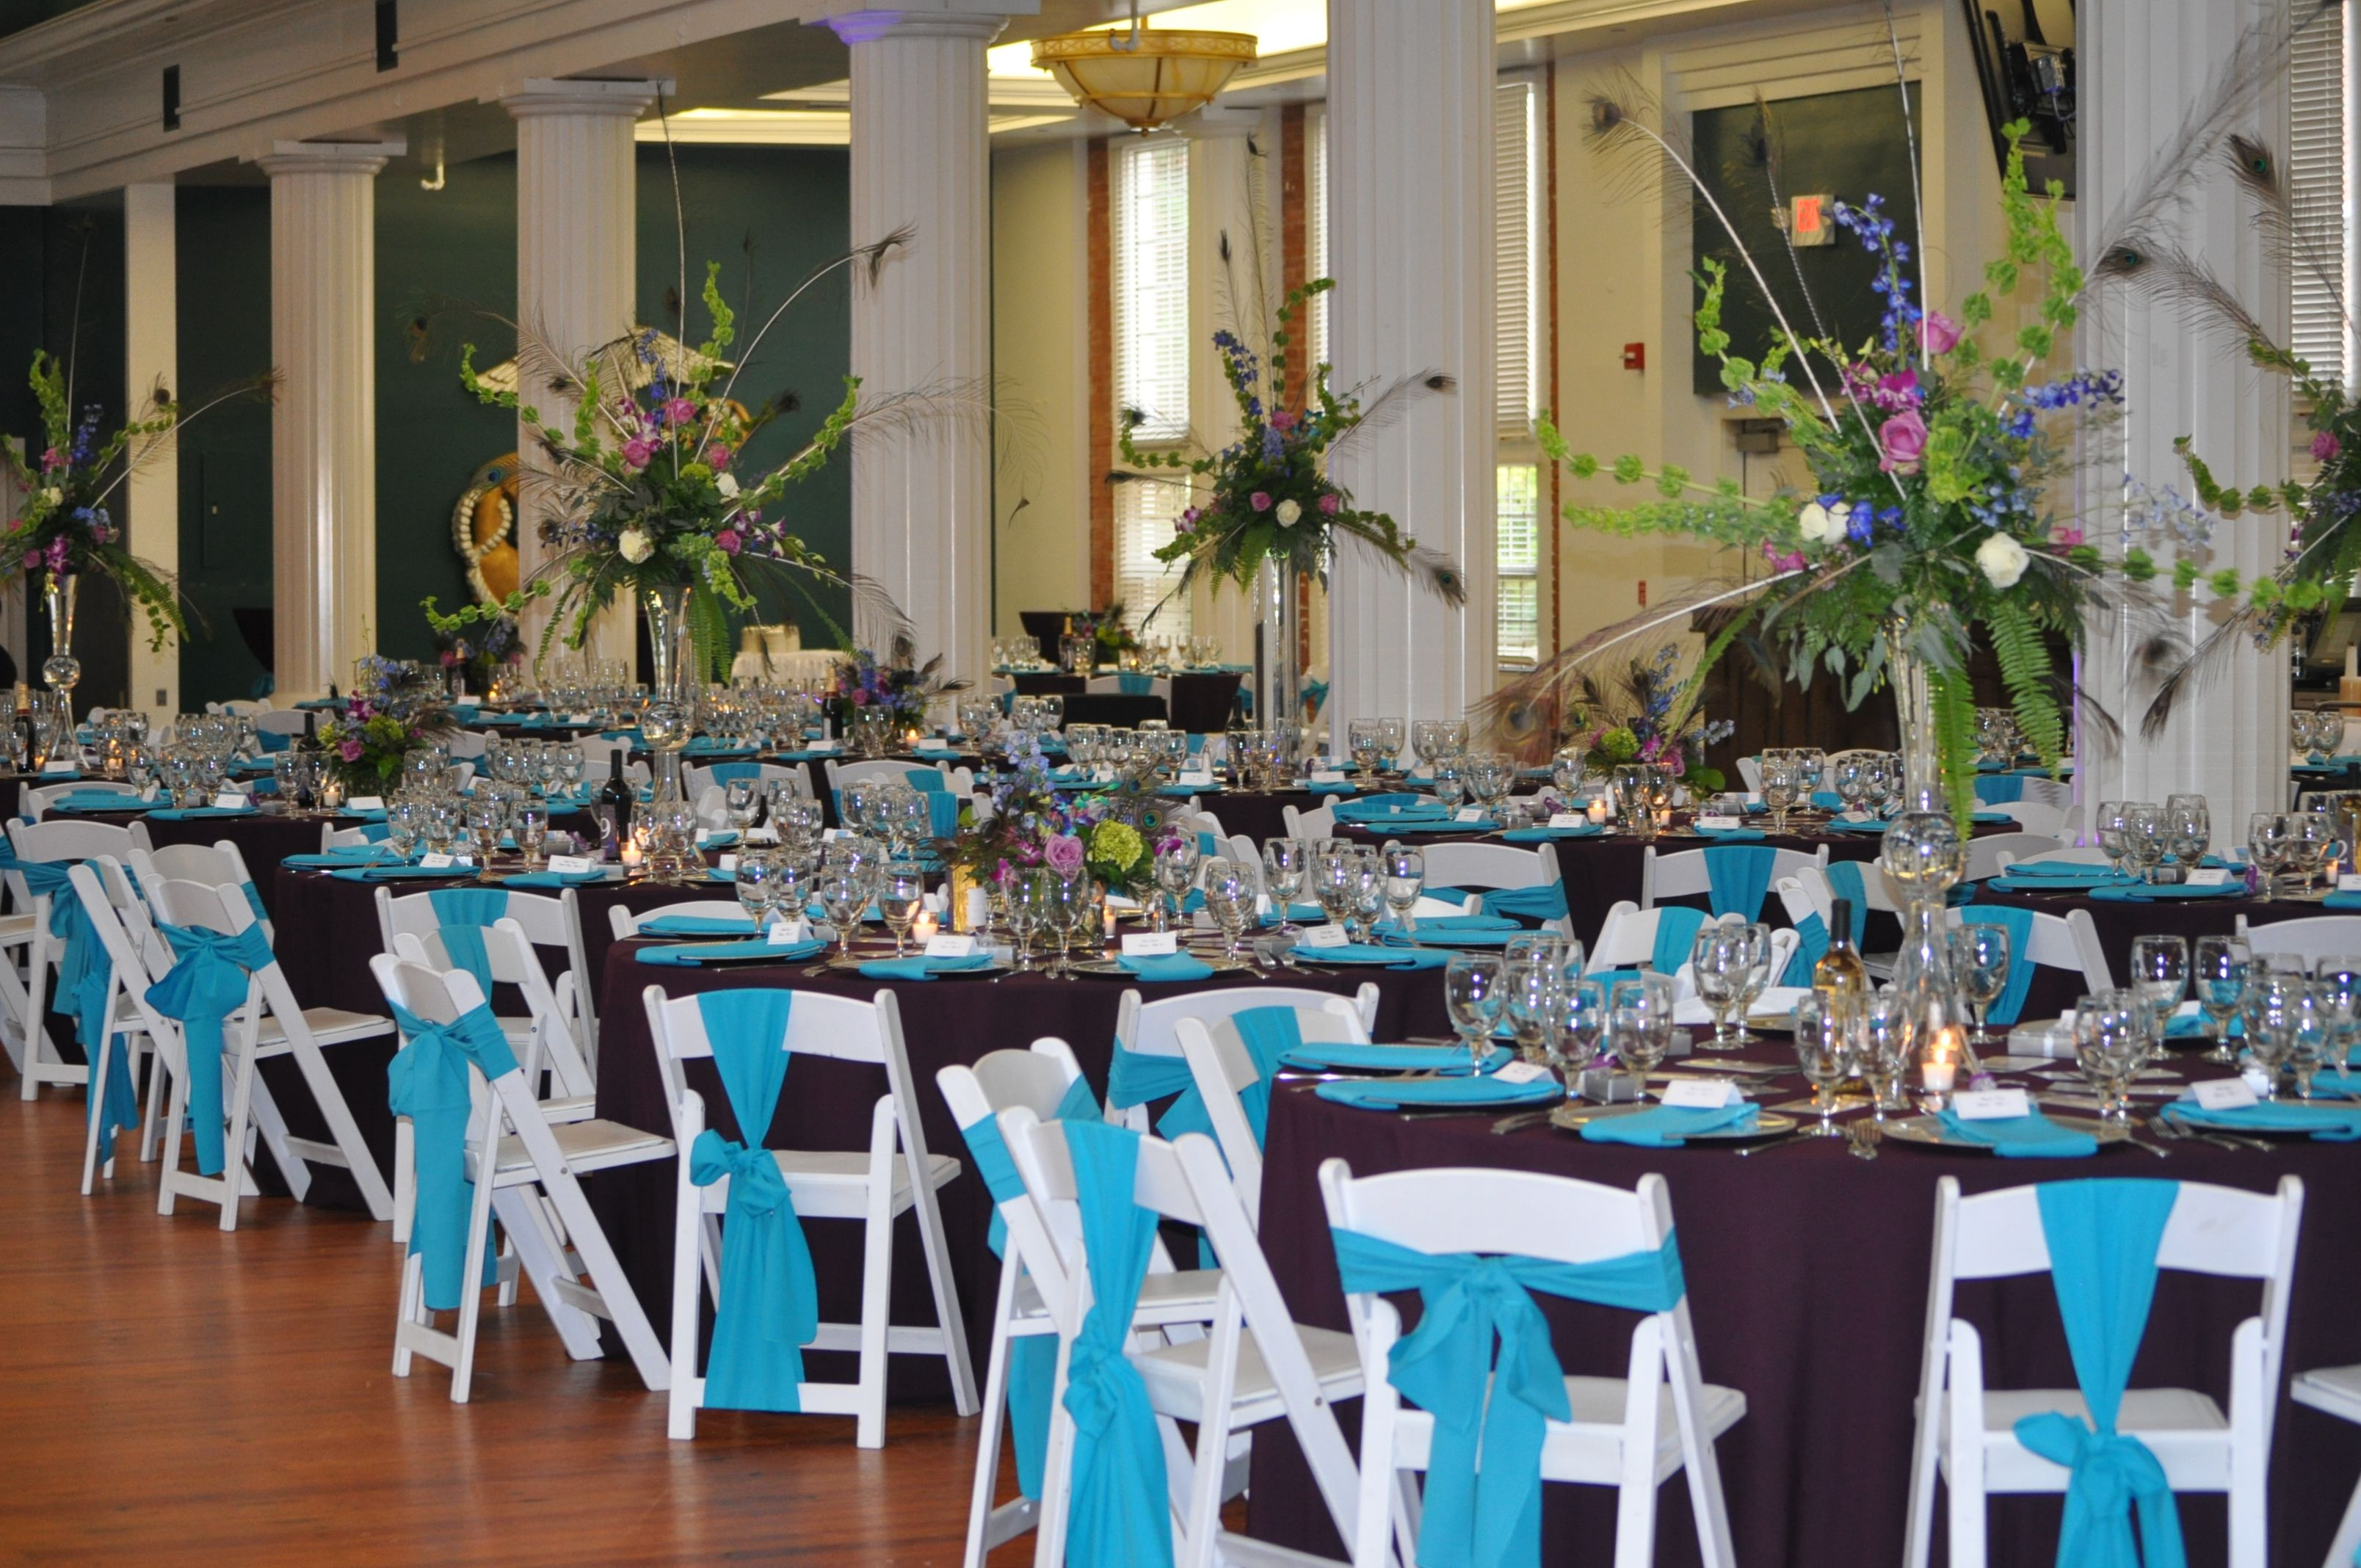 Beaufort Weddings - Teal, purple and white themed wedding at the Lyceum aboard MCRD Parris Island in Beaufort, SC - Catering by Traditions.